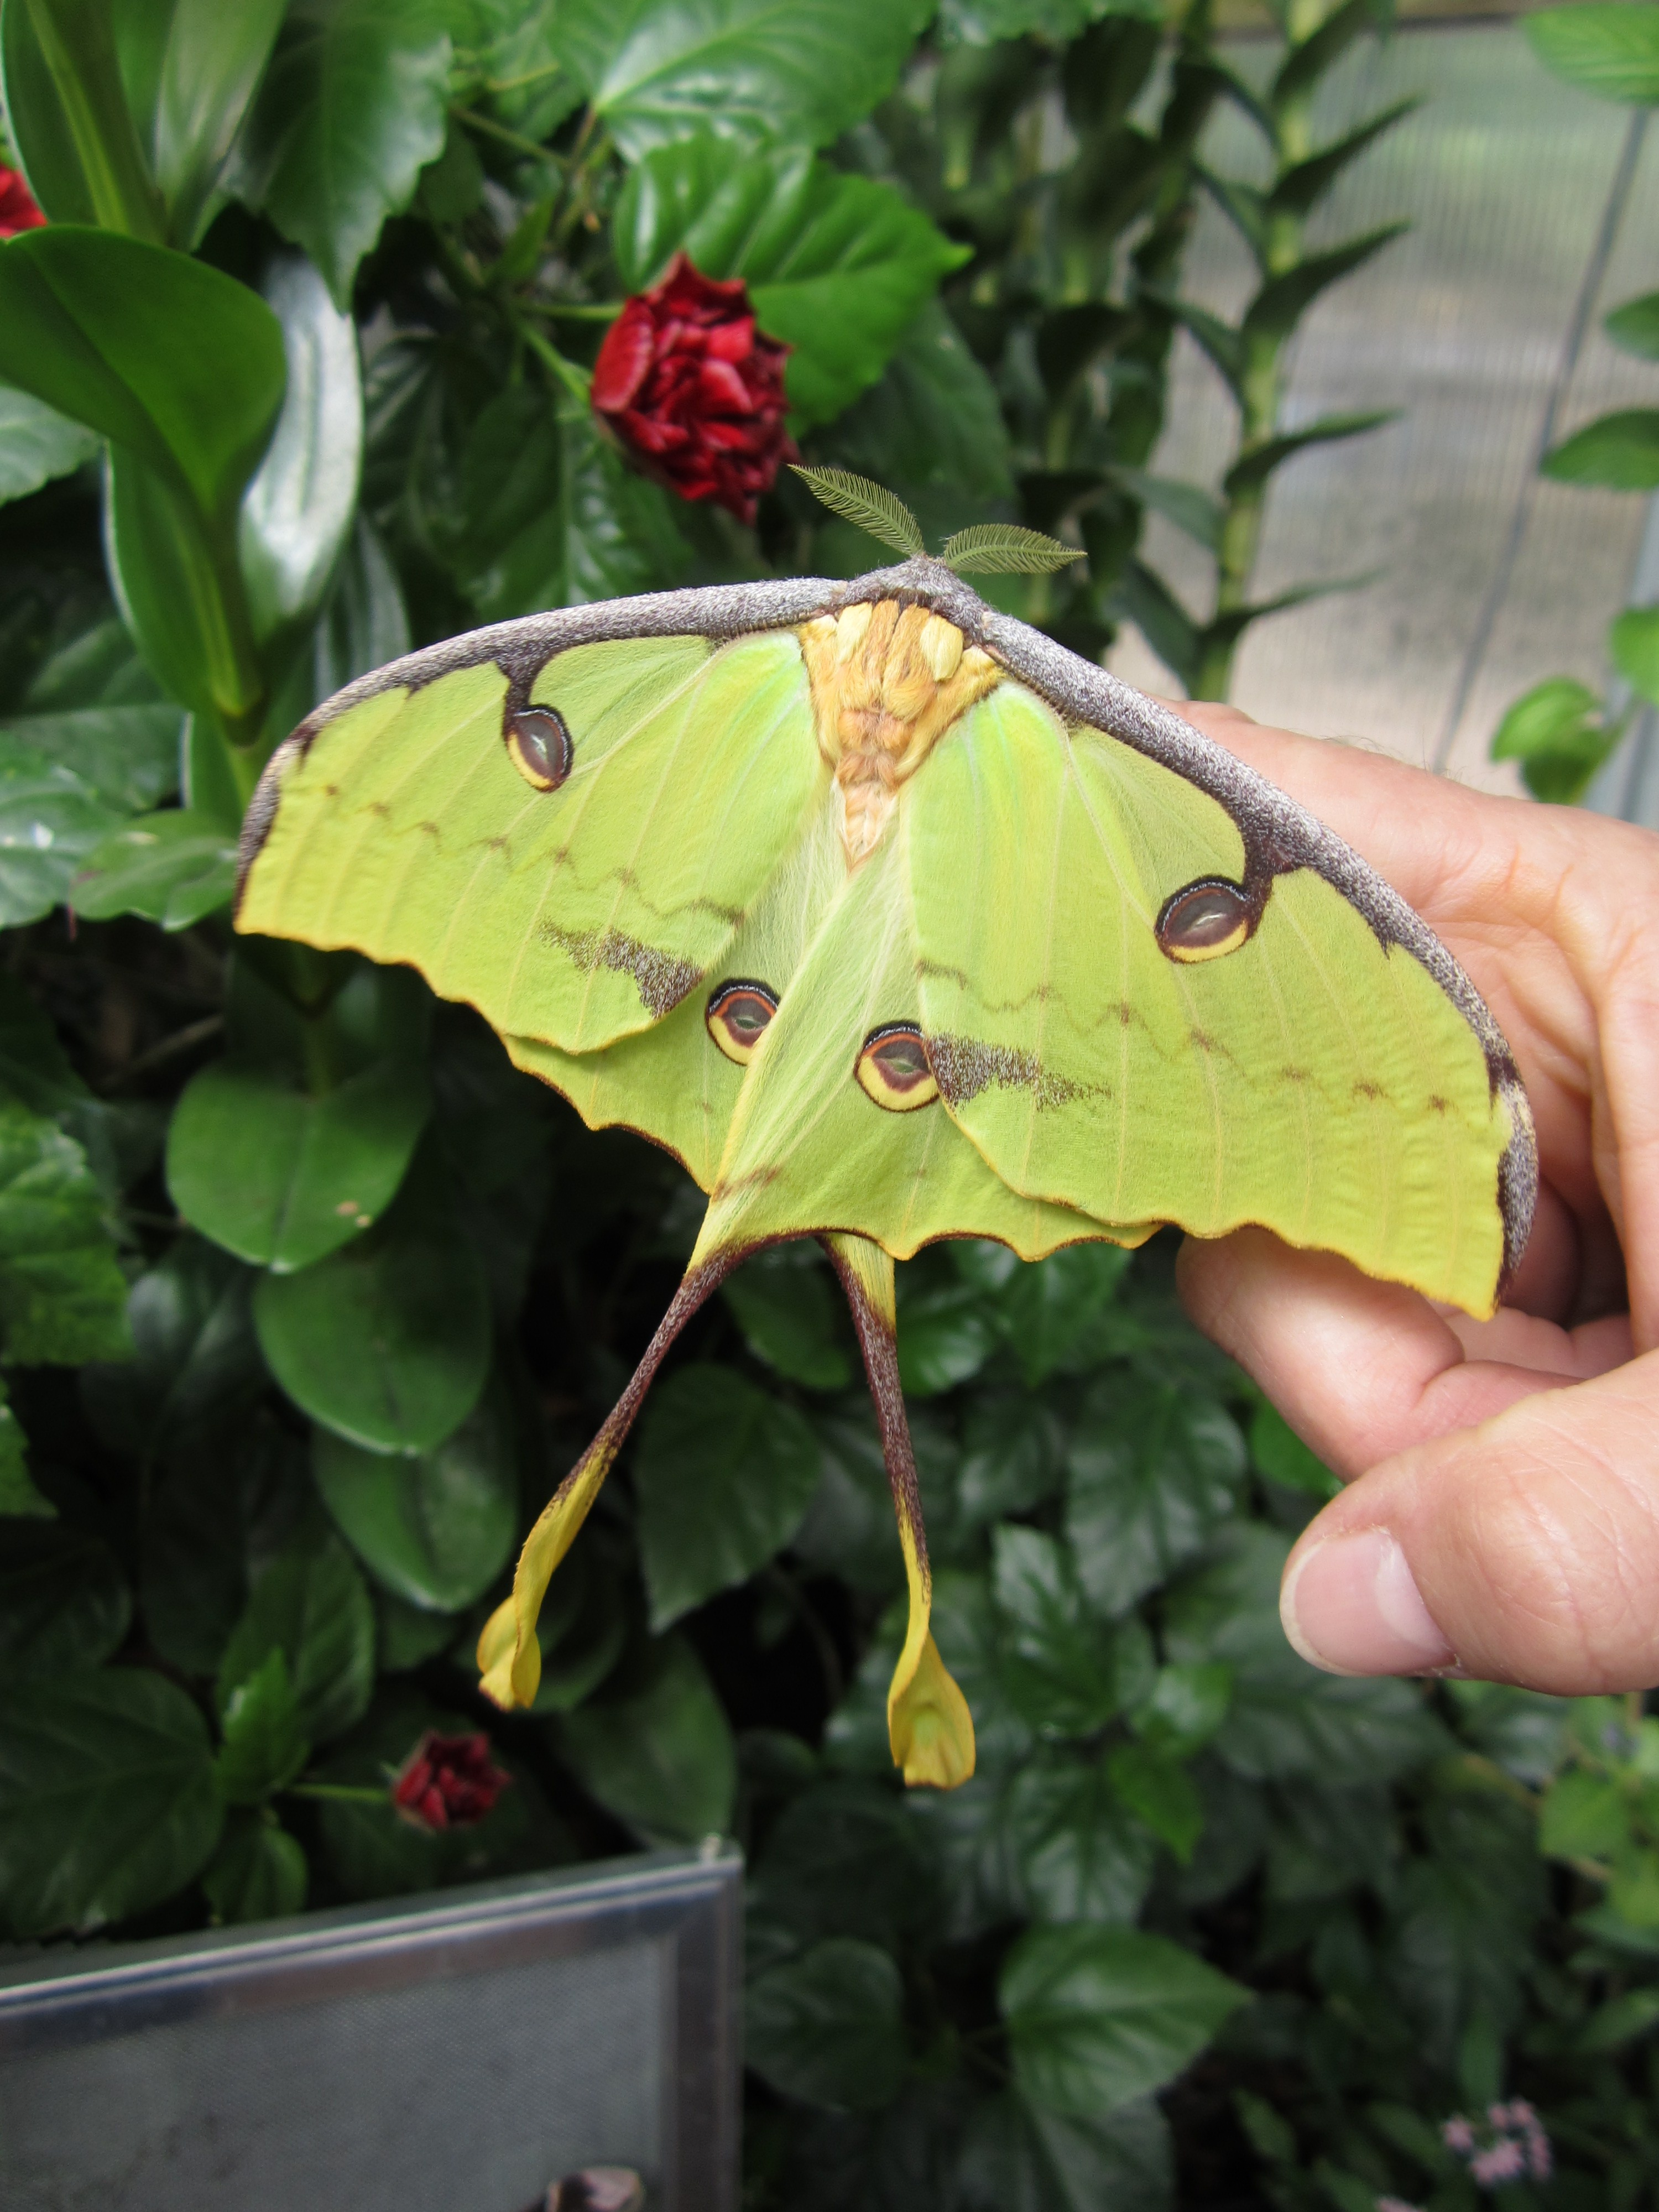 File:African Moon Moth.jpg - Wikimedia Commons